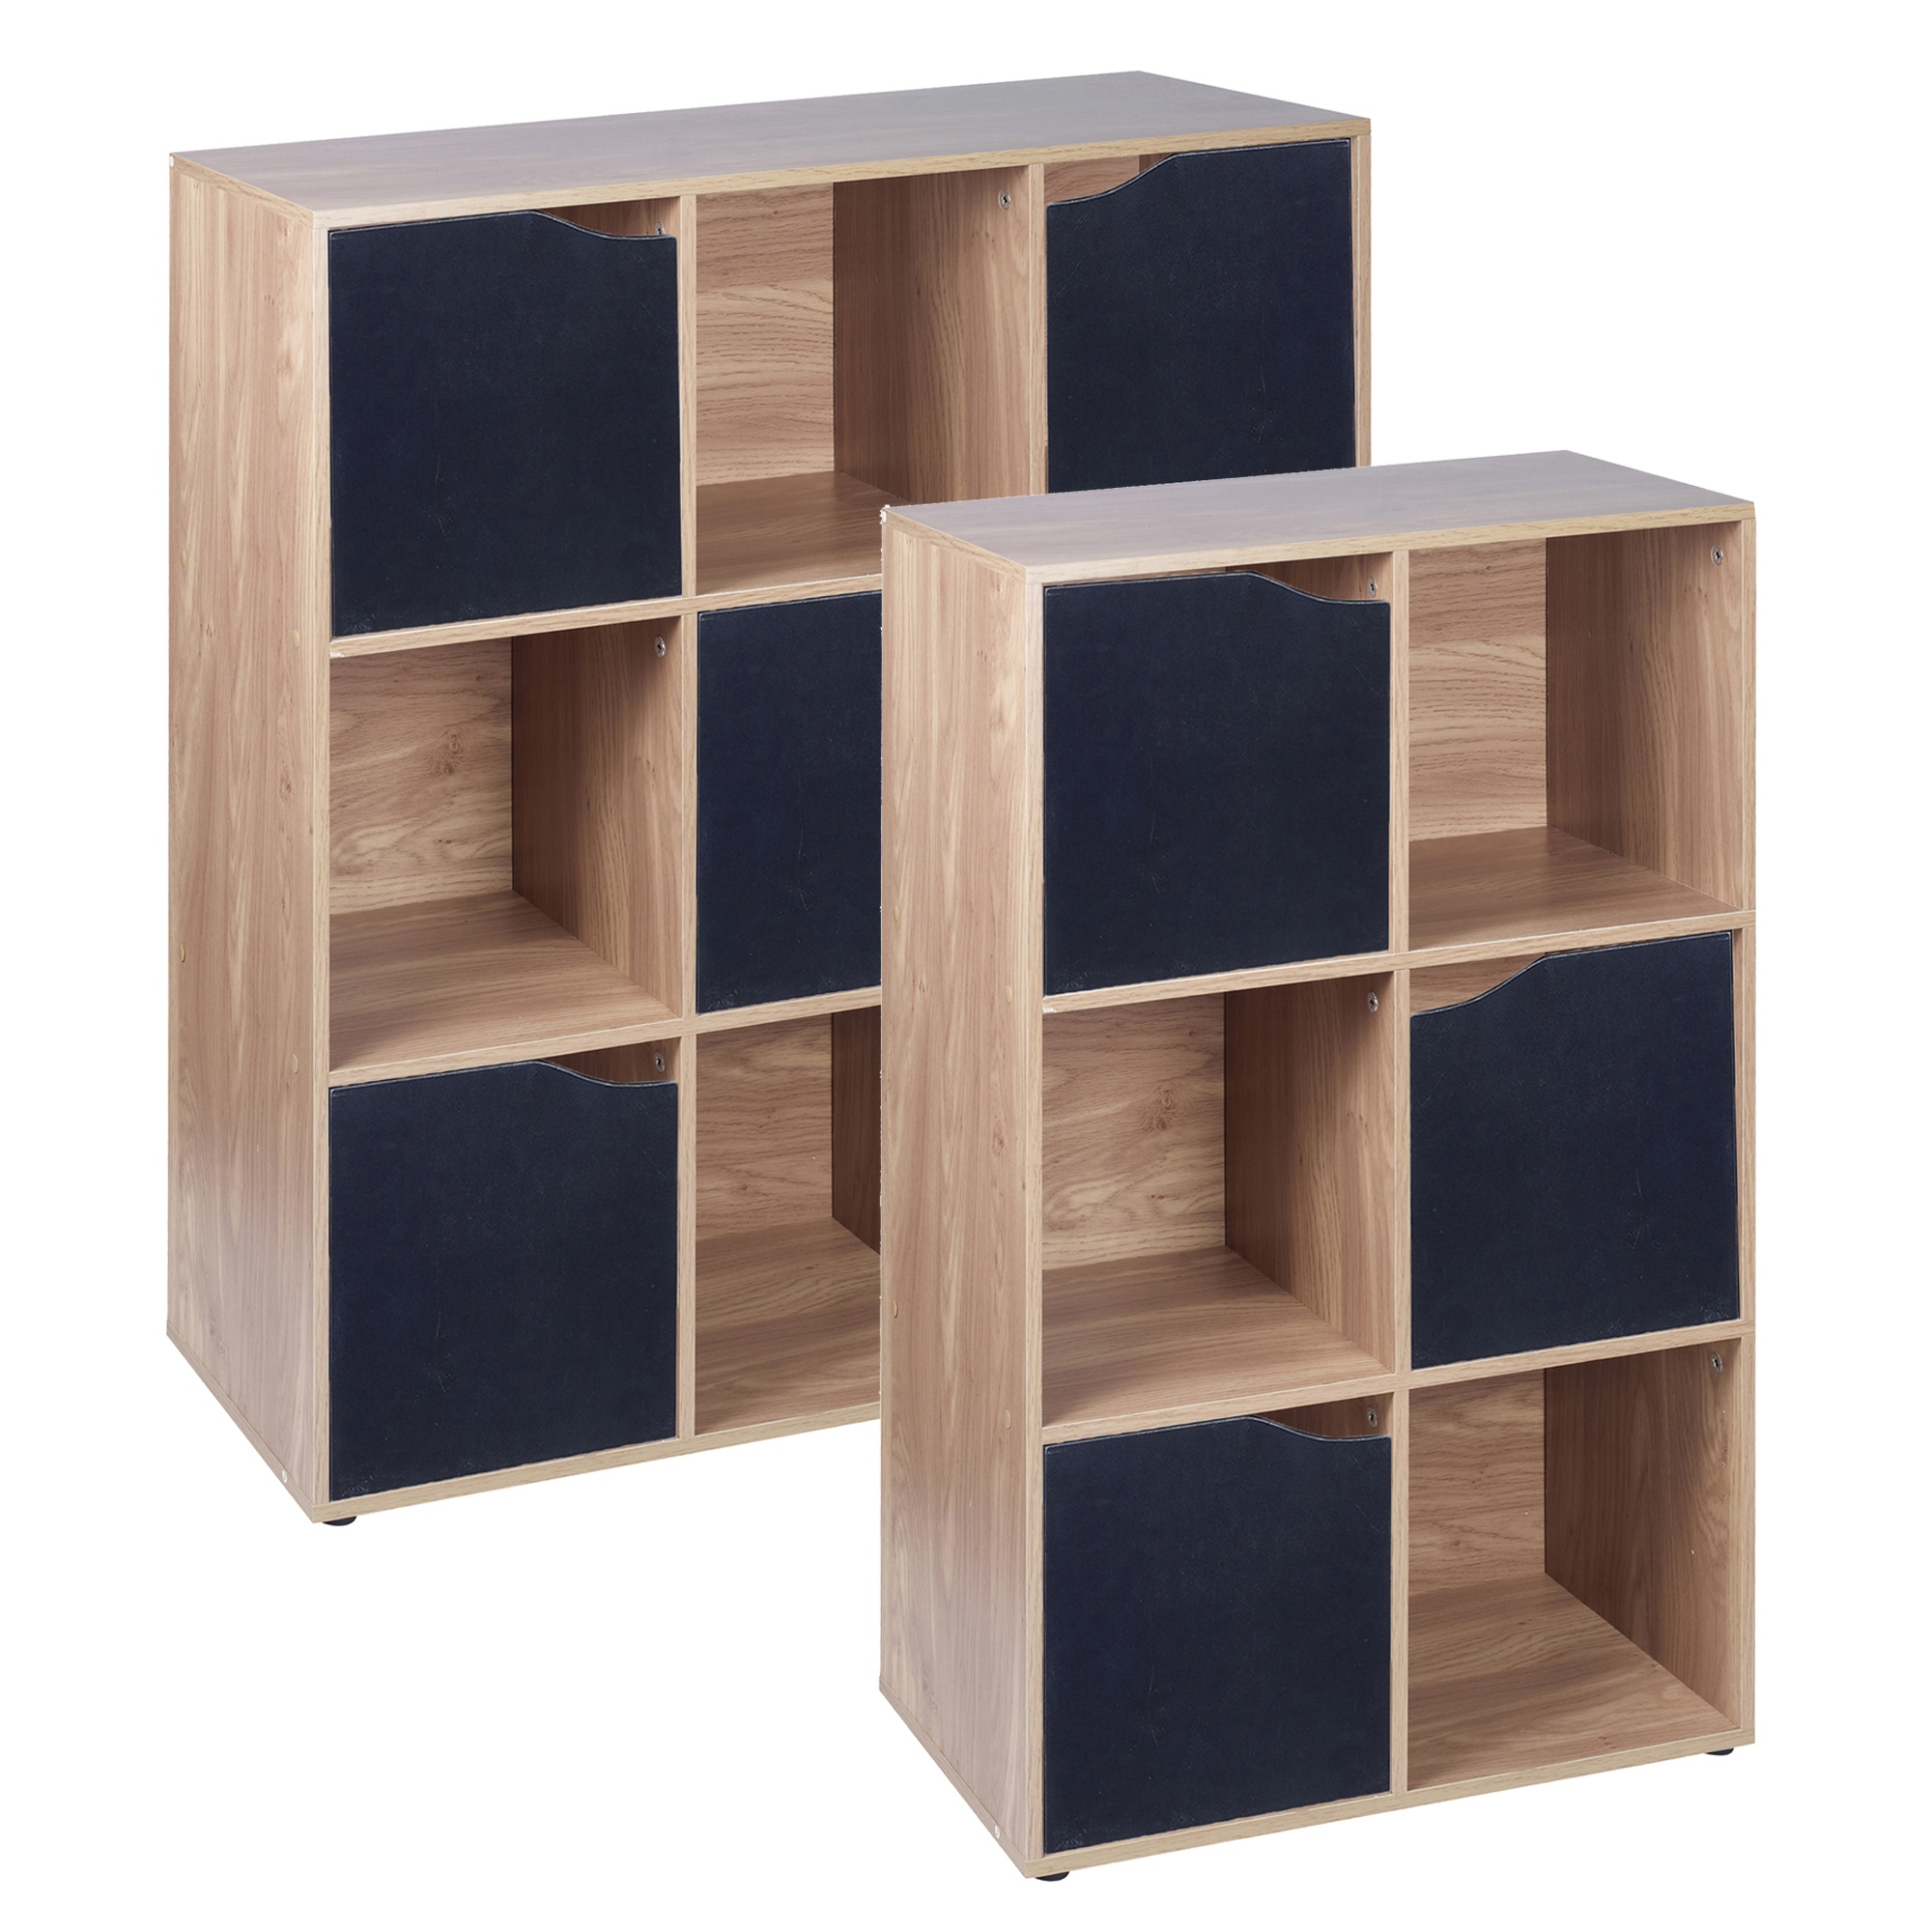 shelving unit with doors 6 9 cube oak modular bookcase shelving display shelf 26051